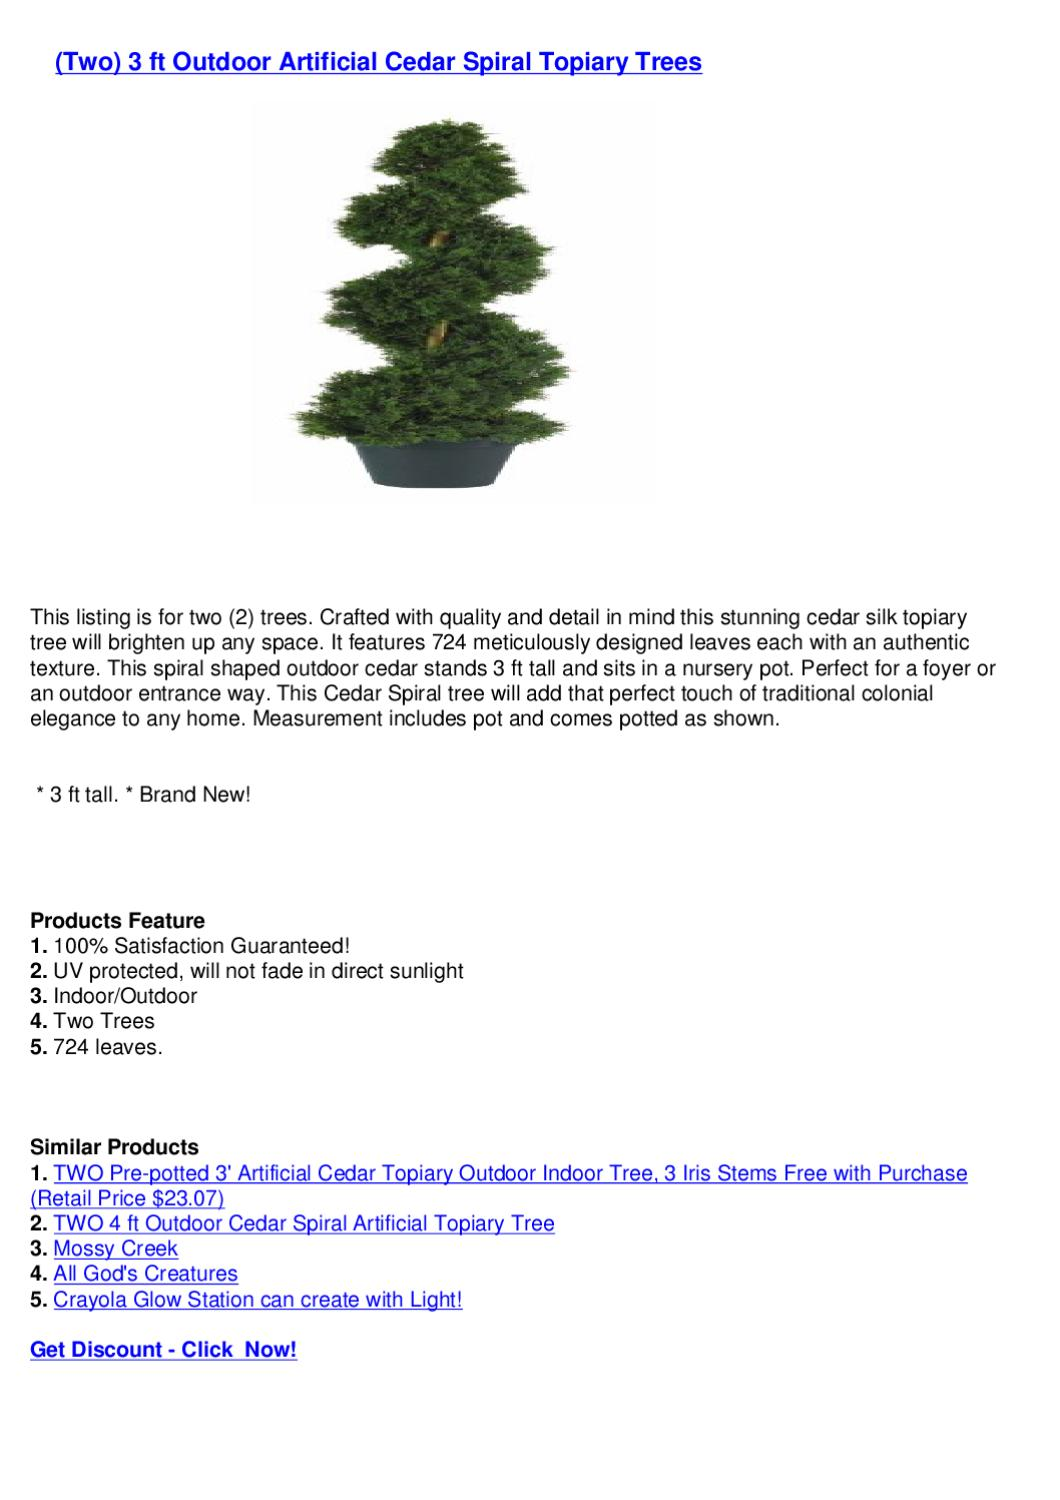 Two 3 Ft Outdoor Artificial Cedar Spiral Topiary Trees By Crismas Tree Issuu